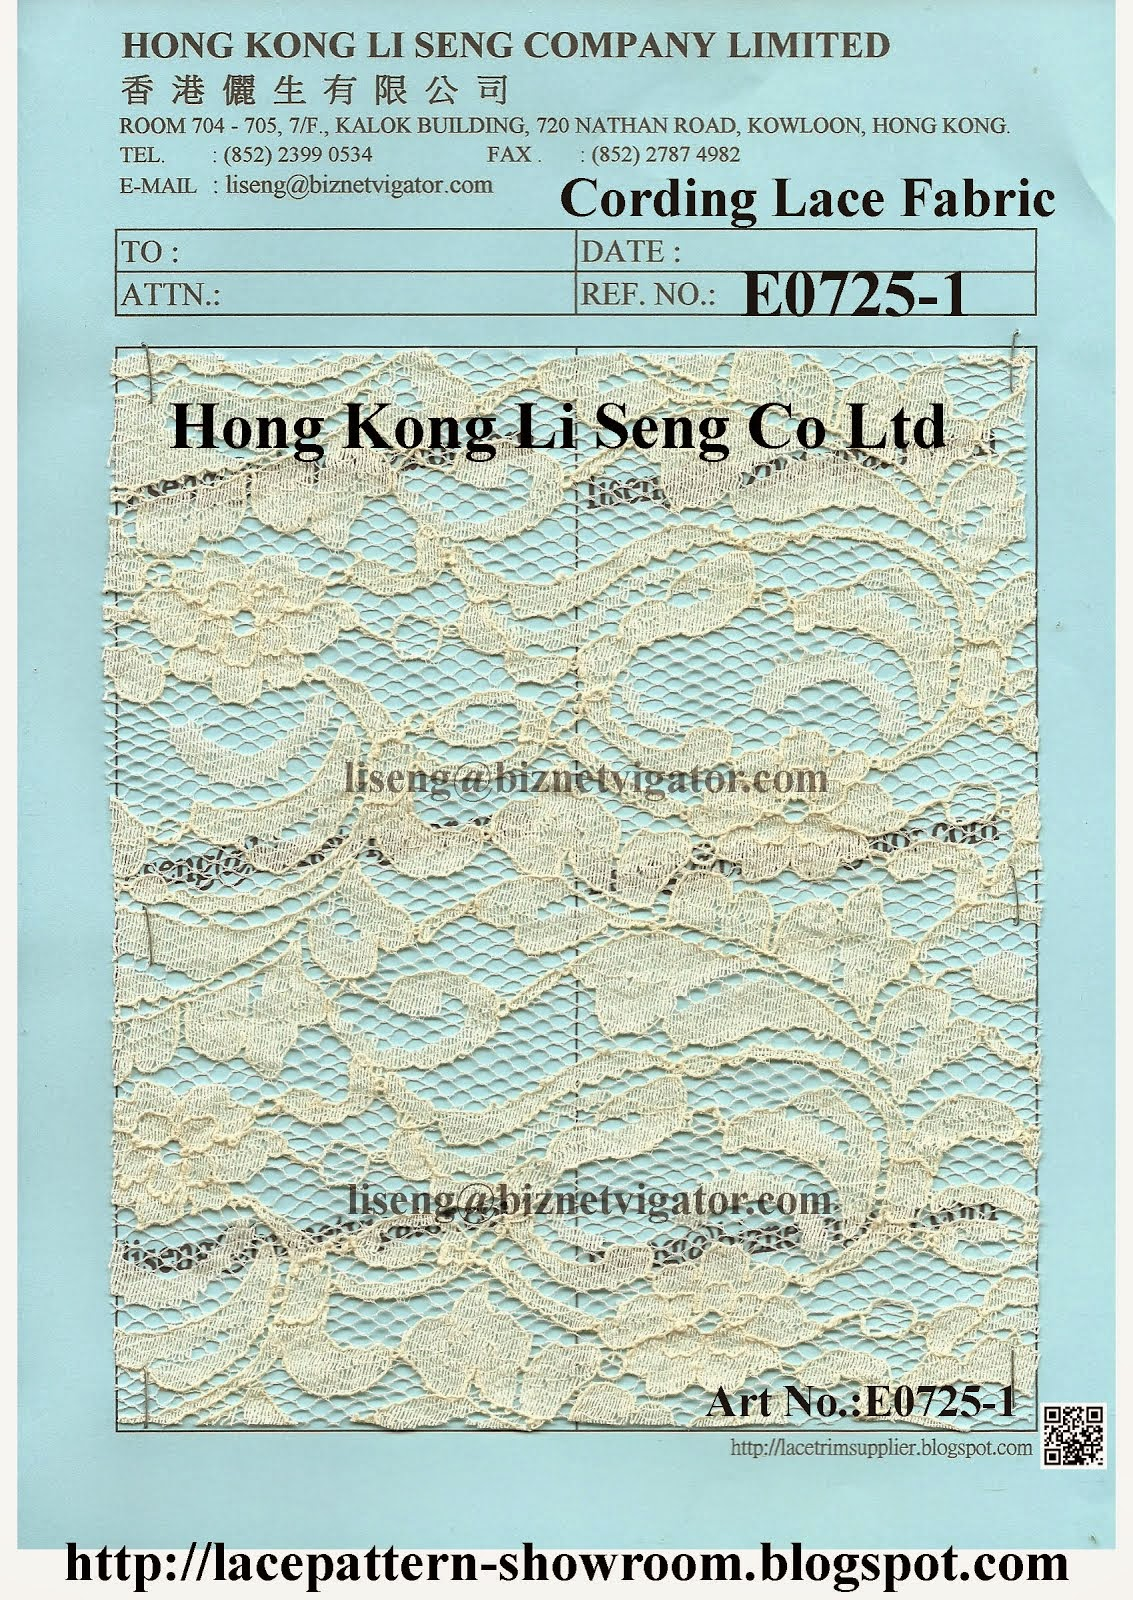 Embroidered Cotton Cording Lace Fabric Factory Wholesale and Supplier - Hong Kong Li Seng Co Ltd